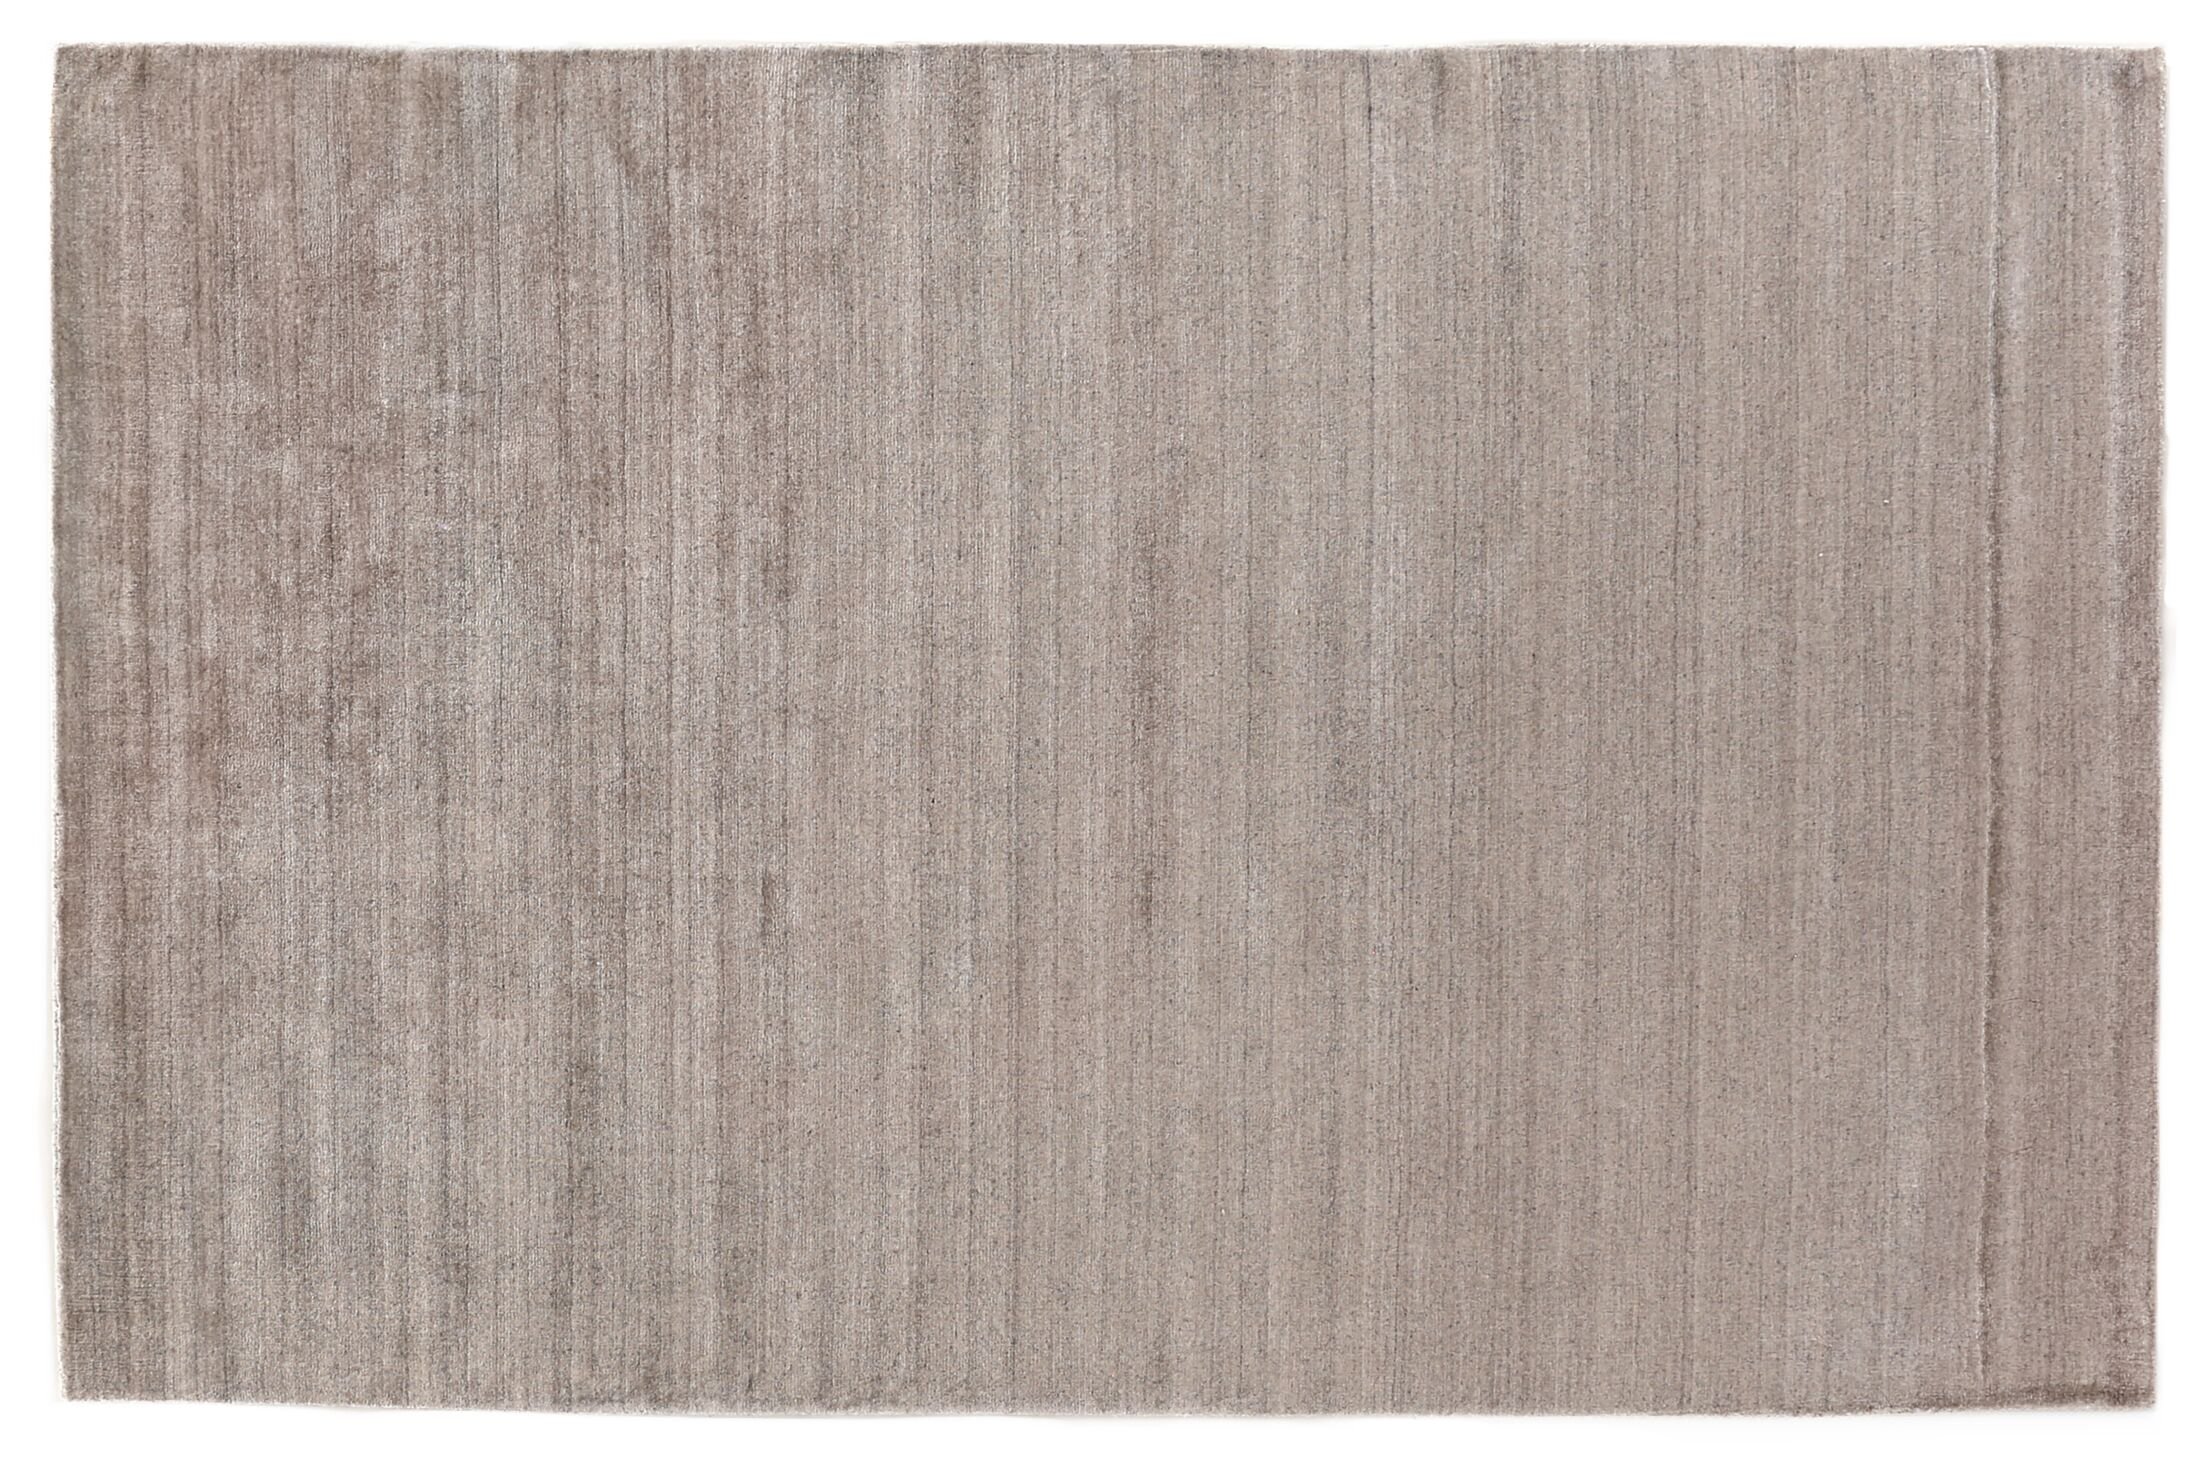 Sanctuary Hand Woven Silk Taupe Area Rug Rug Size: Rectangle 10' x 14'